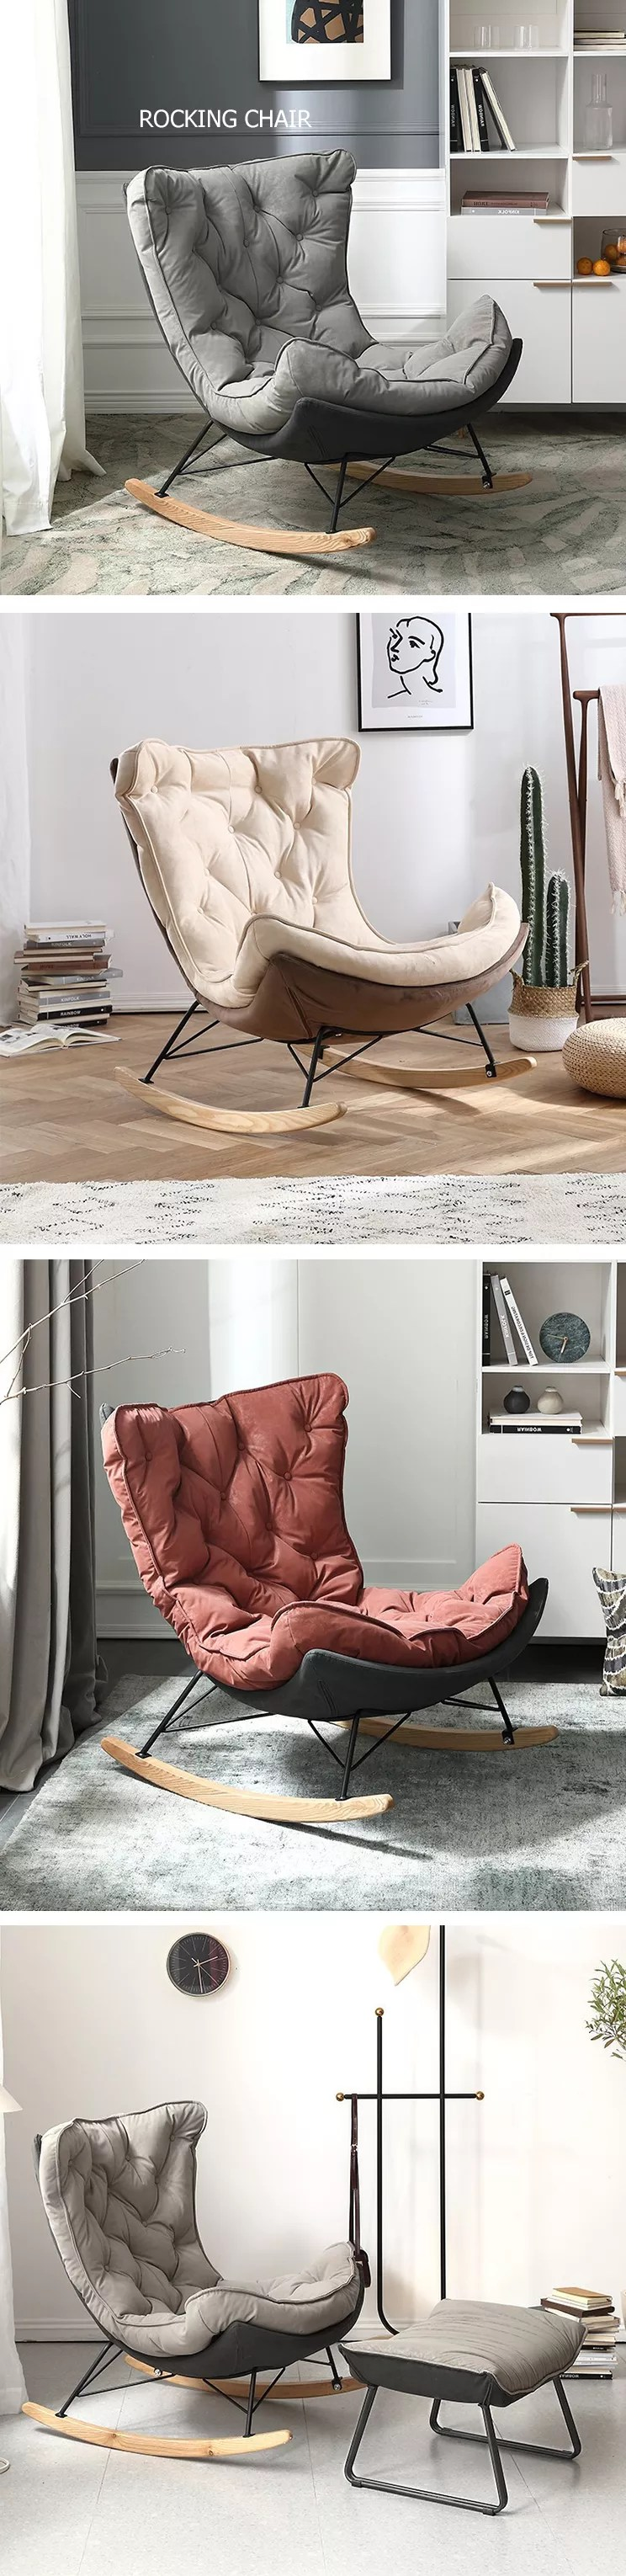 patio furniture adult cushion zero gravity metal frame footrest arm sofa relax wood base rocking recliner chair for living room buy rocking recliner